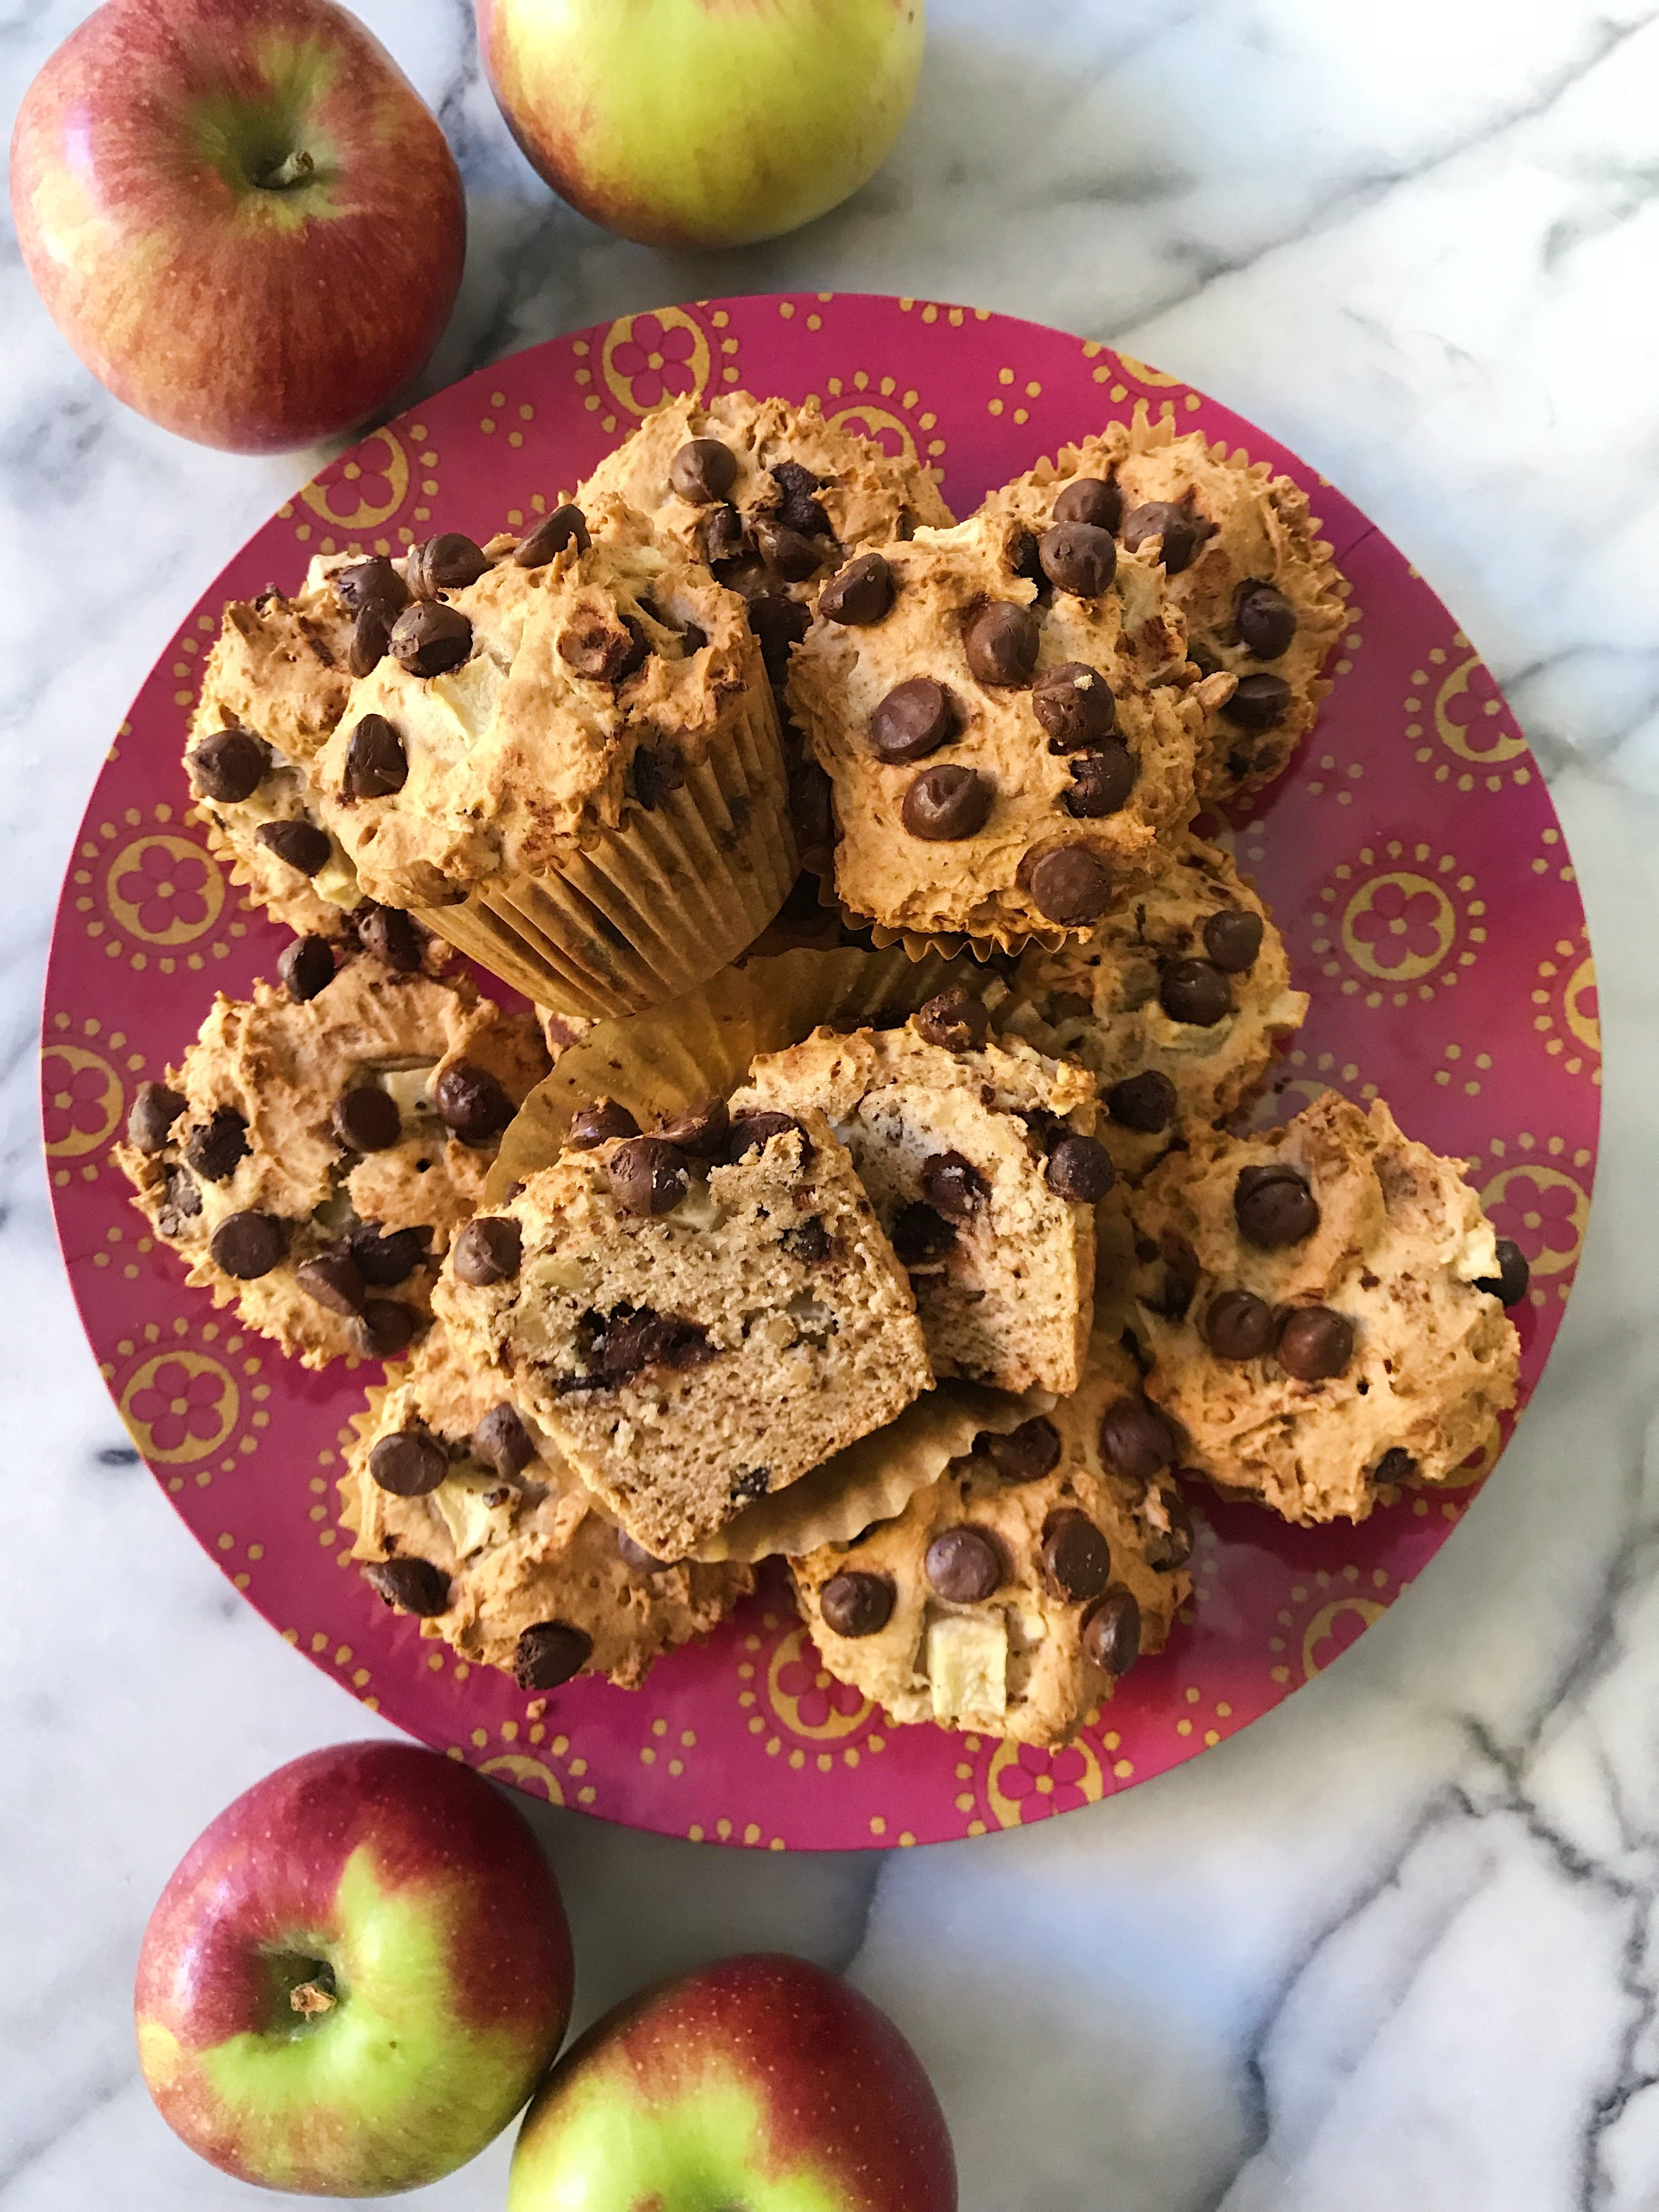 gluten free chocolate chip apple muffins #glutenfree #glutenfreerecipes www.healthygffamily.com